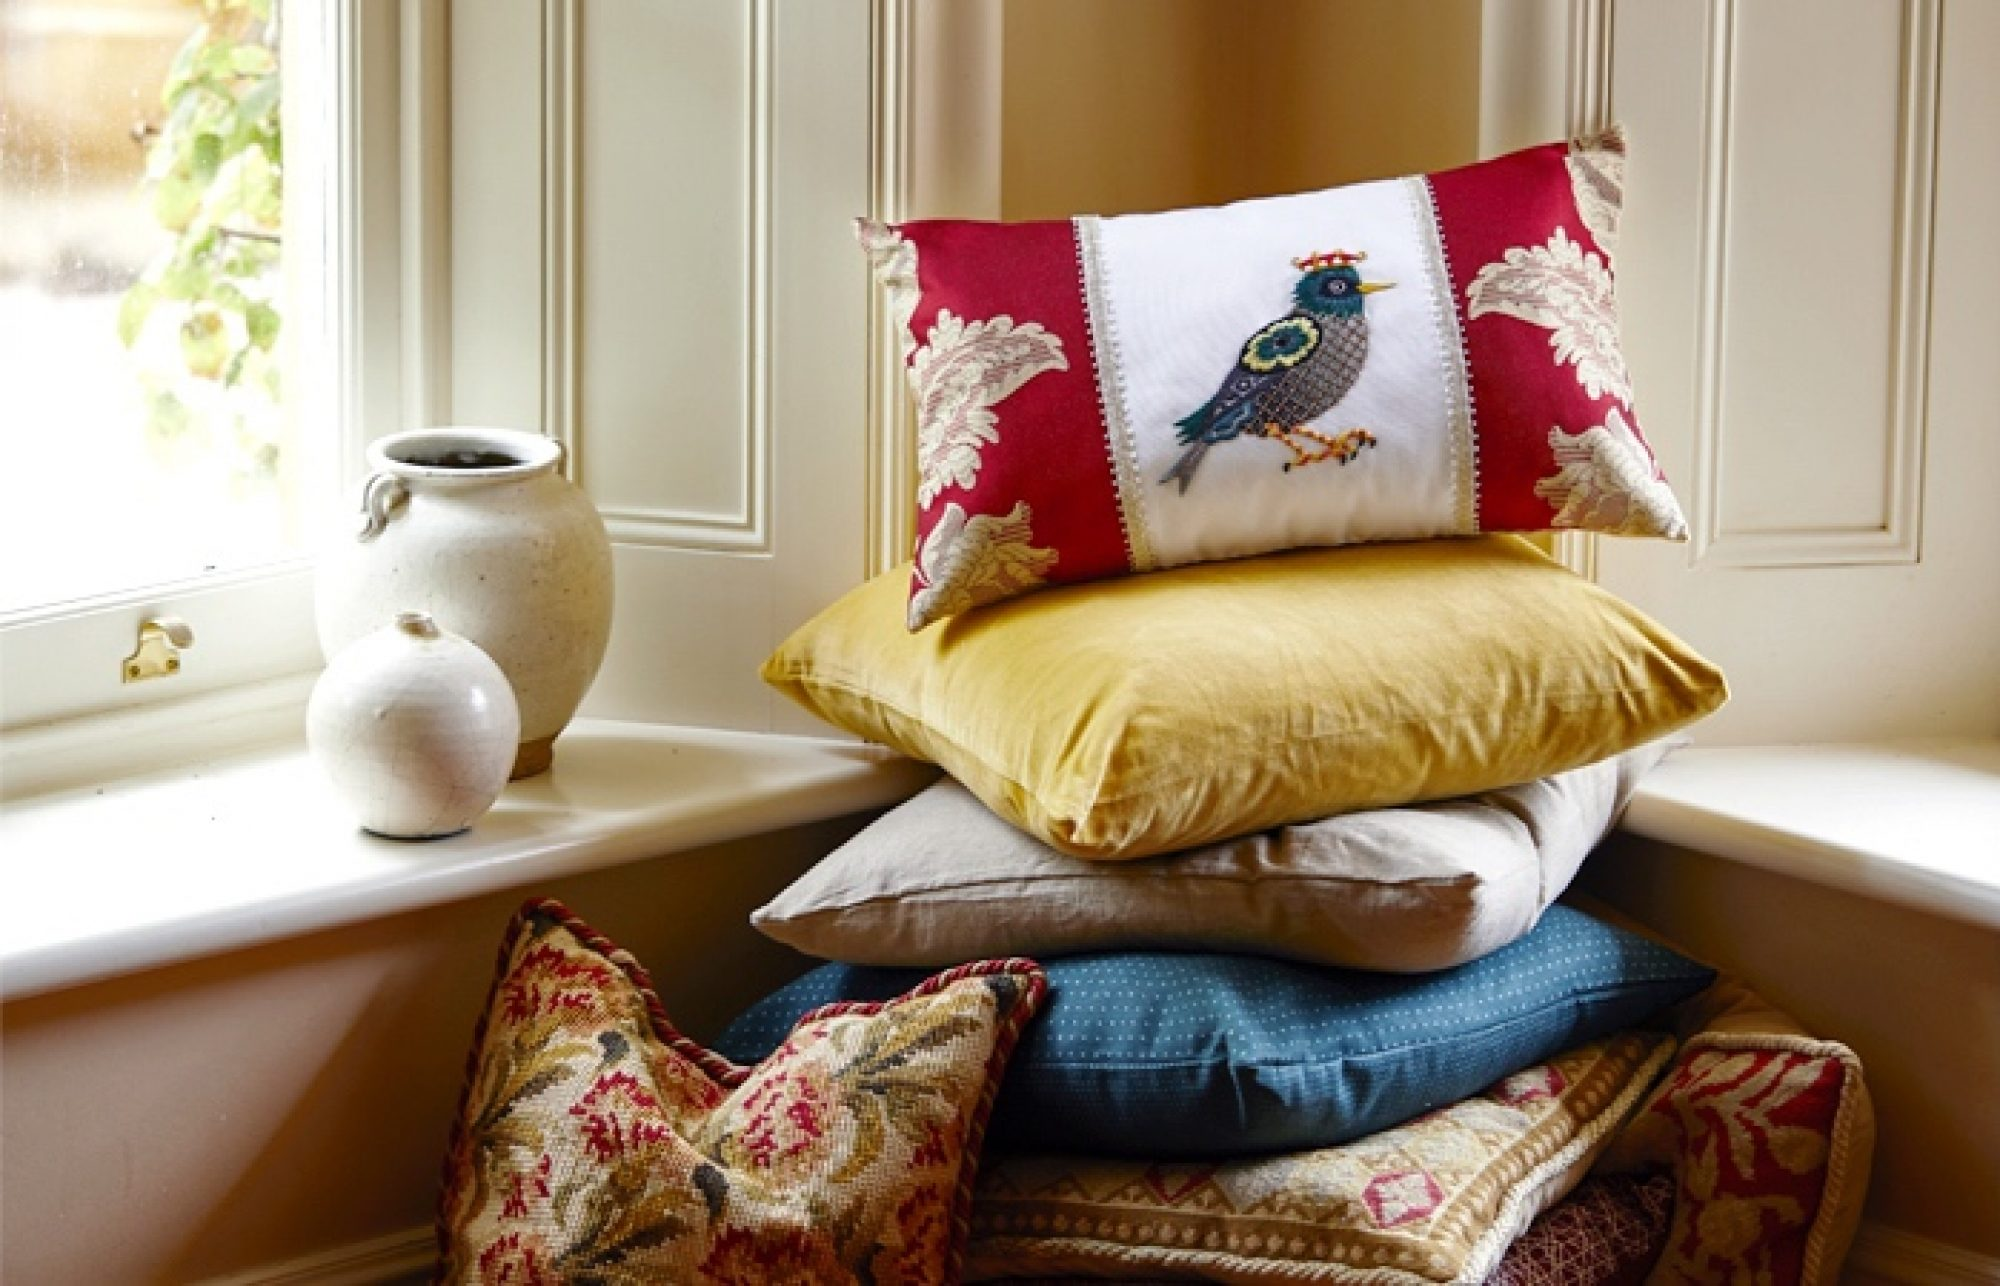 The Starling By Nicola Jarvis Inspirations Studios